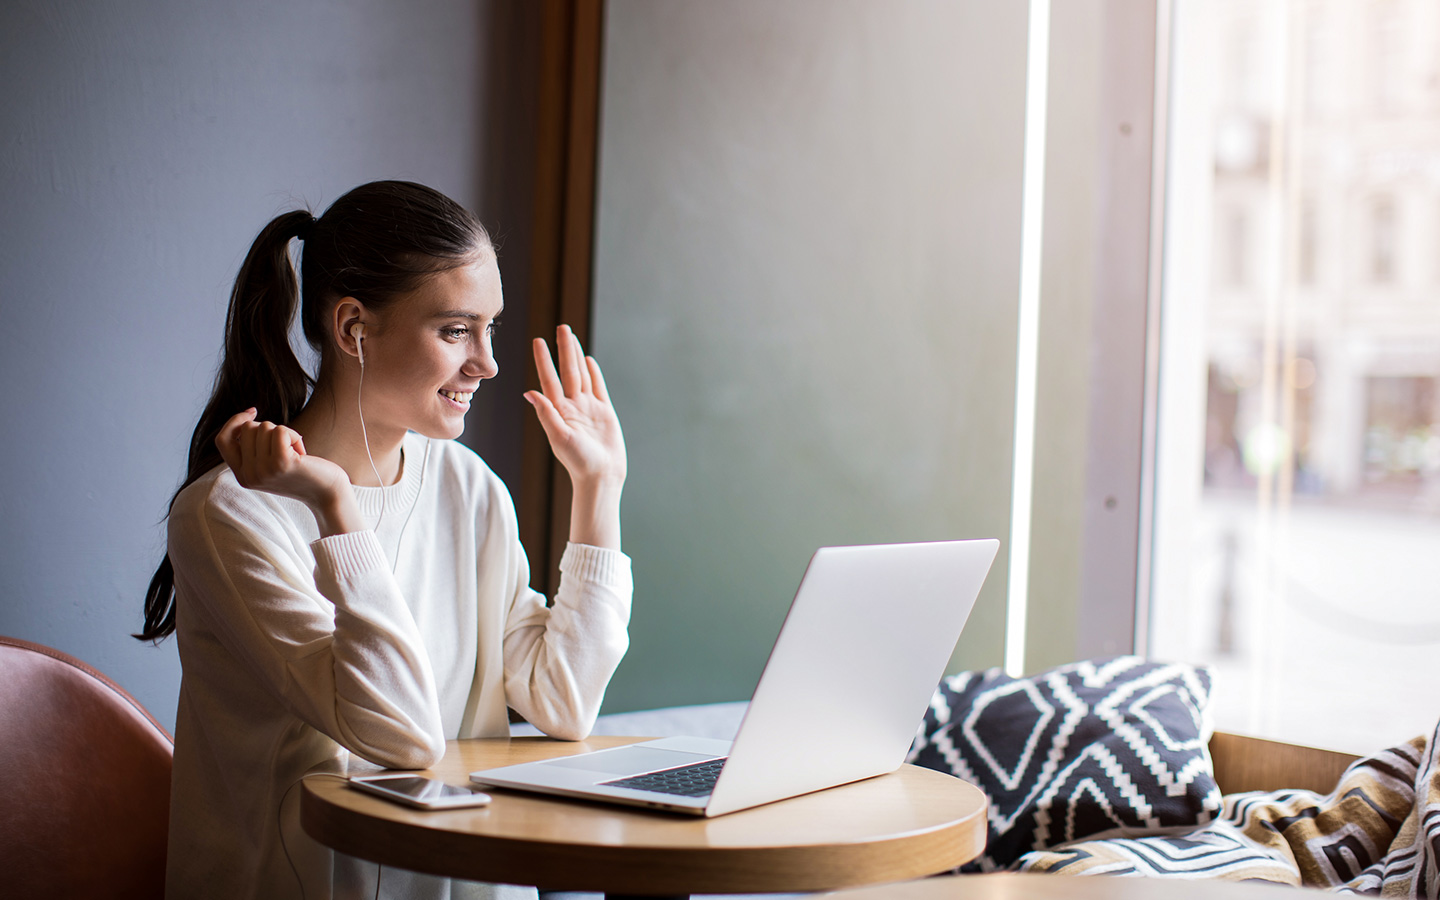 View of woman using internet calling plans in the UAE at home